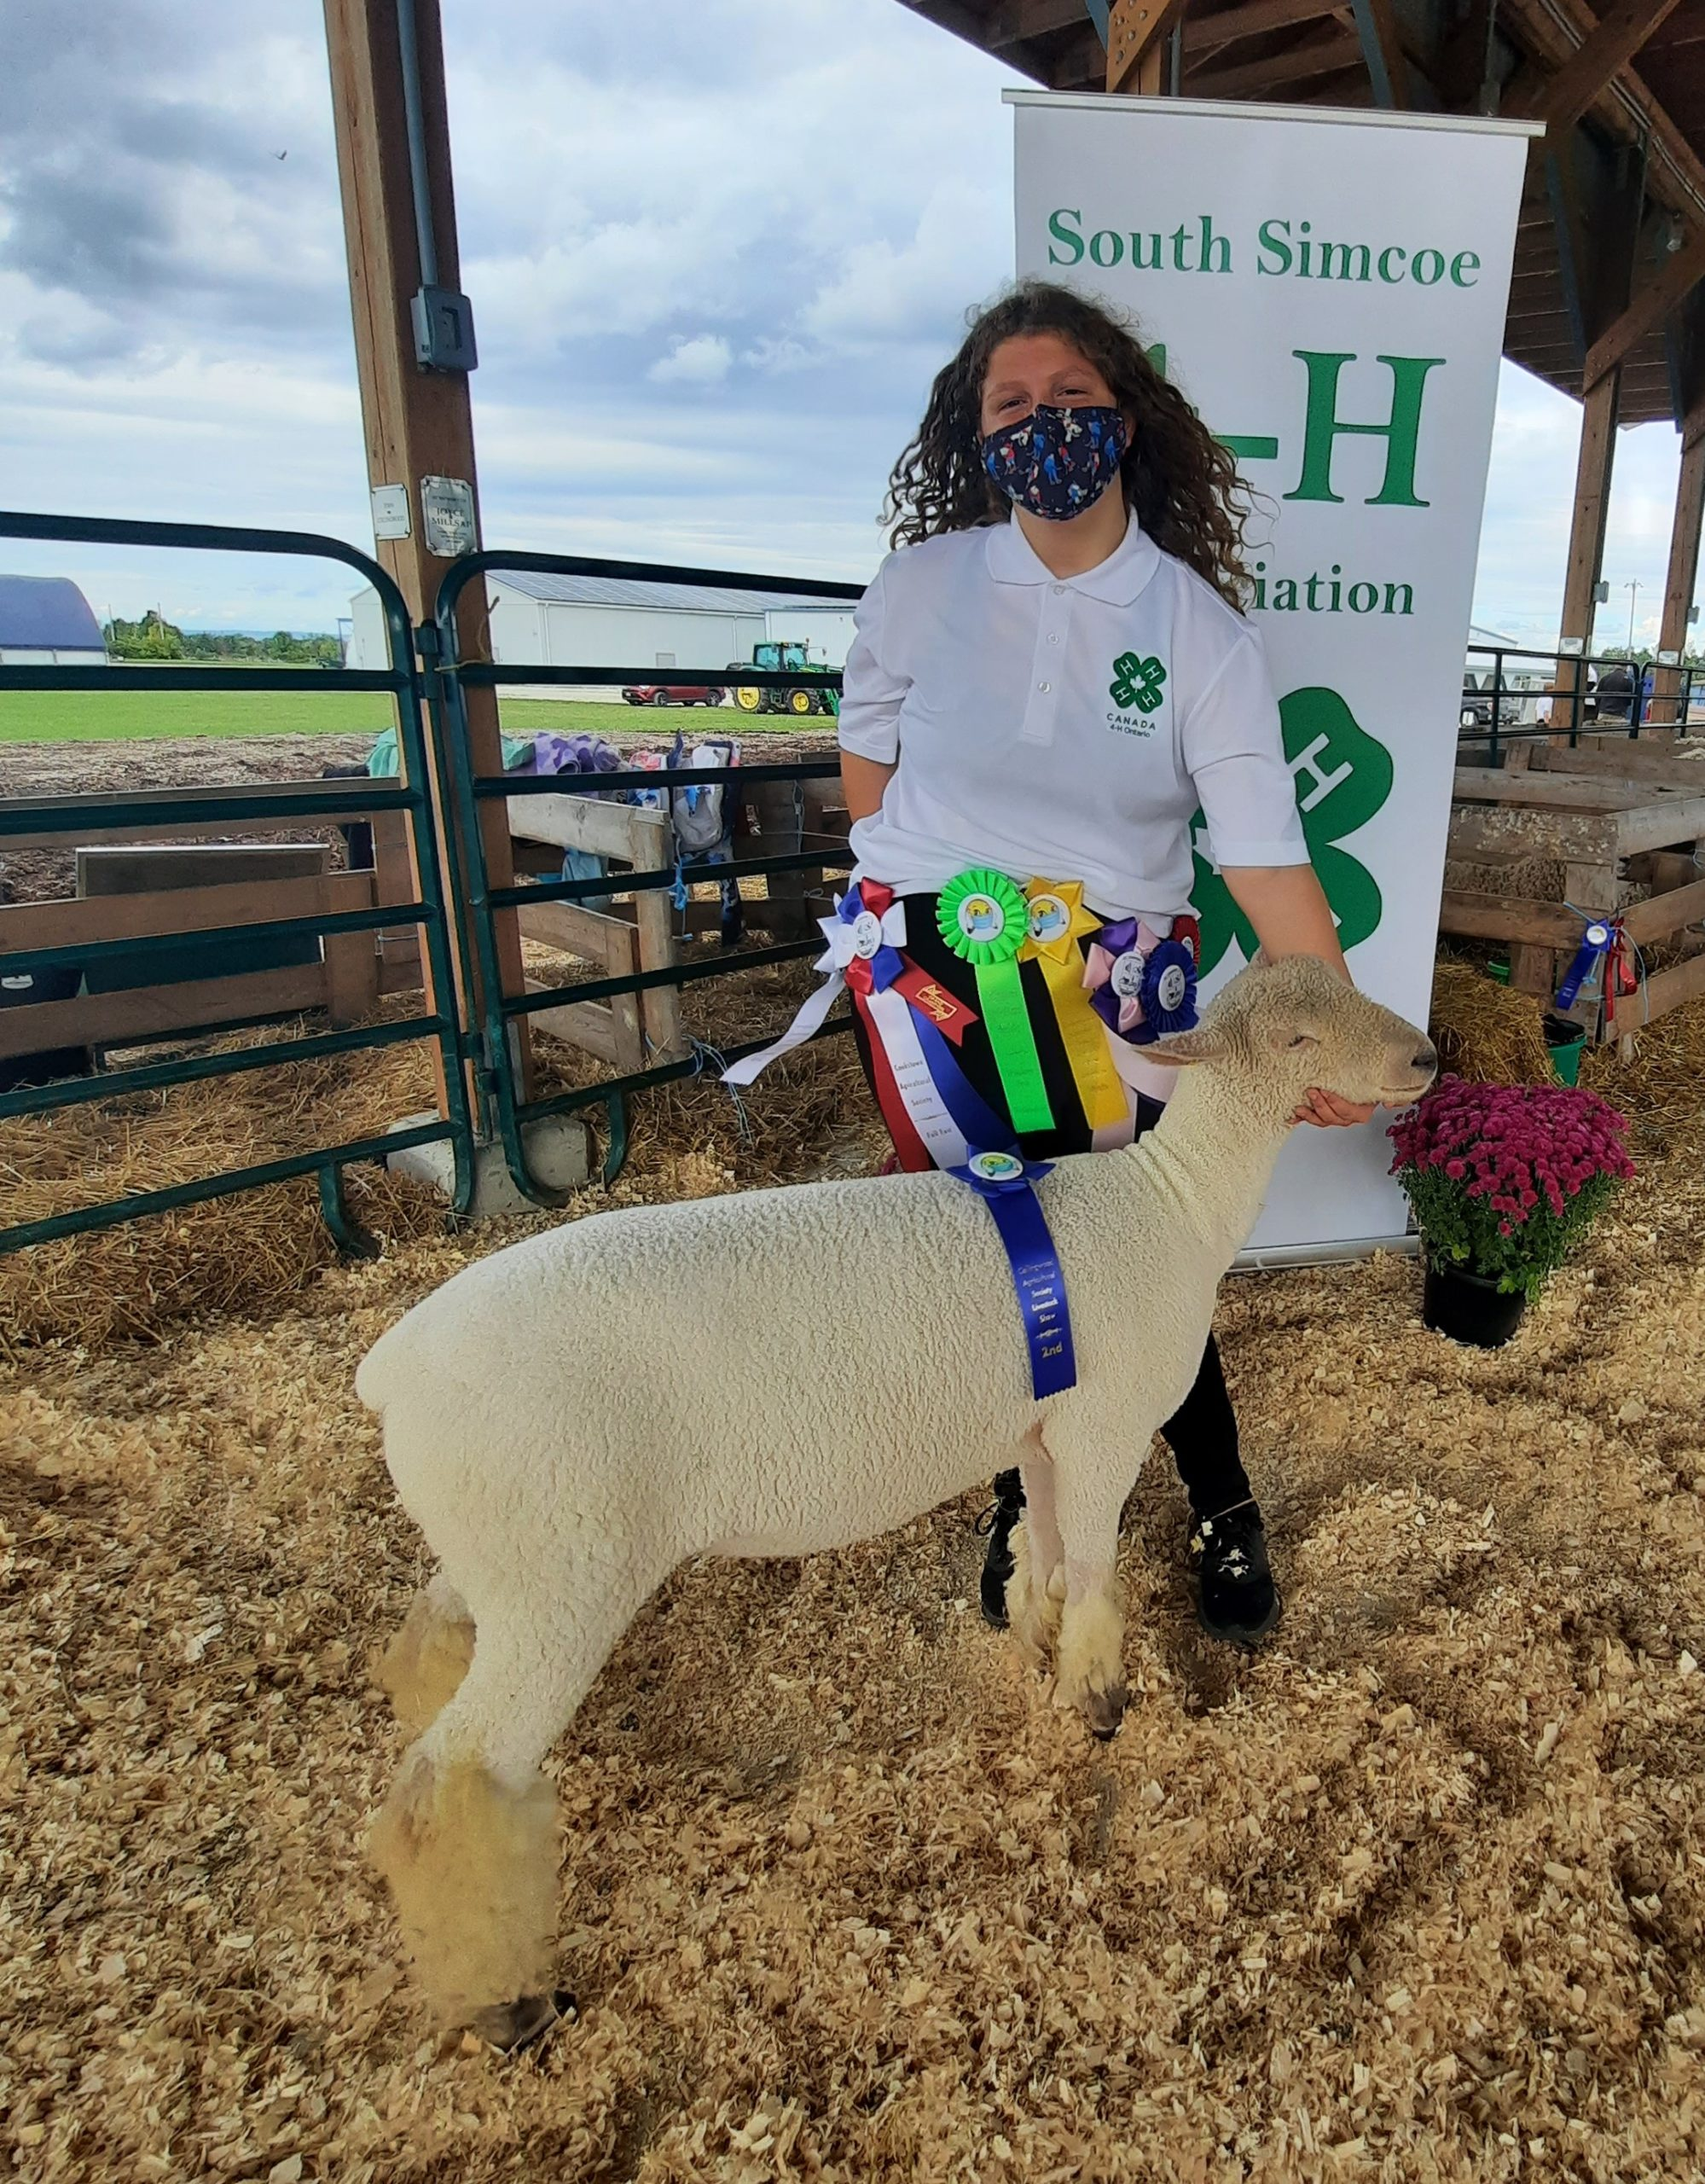 Grand Champion Ewe Lamb for Cookstown and Everett 4-H sheep club 2021. Lamb is a purebred Southdown.